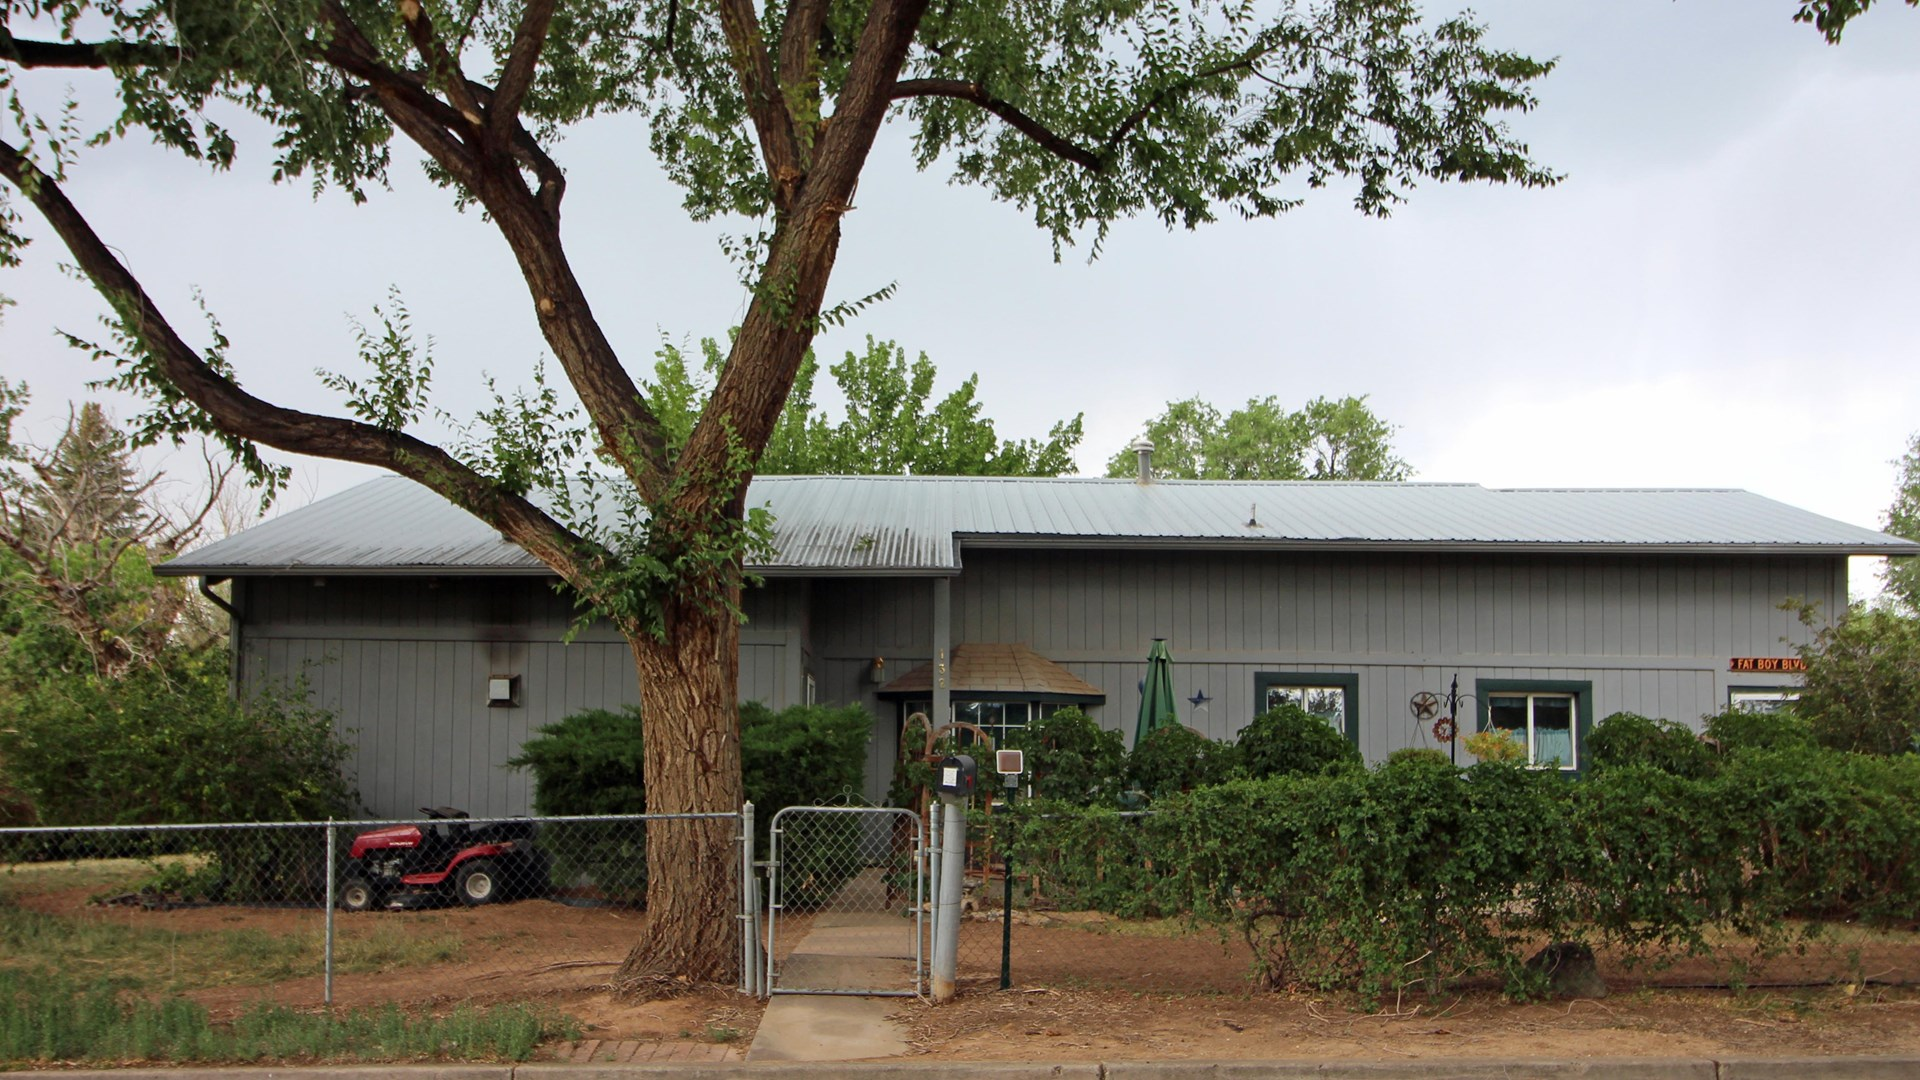 Cortez CO Home For Sale, Fenced Yard, Shade Trees